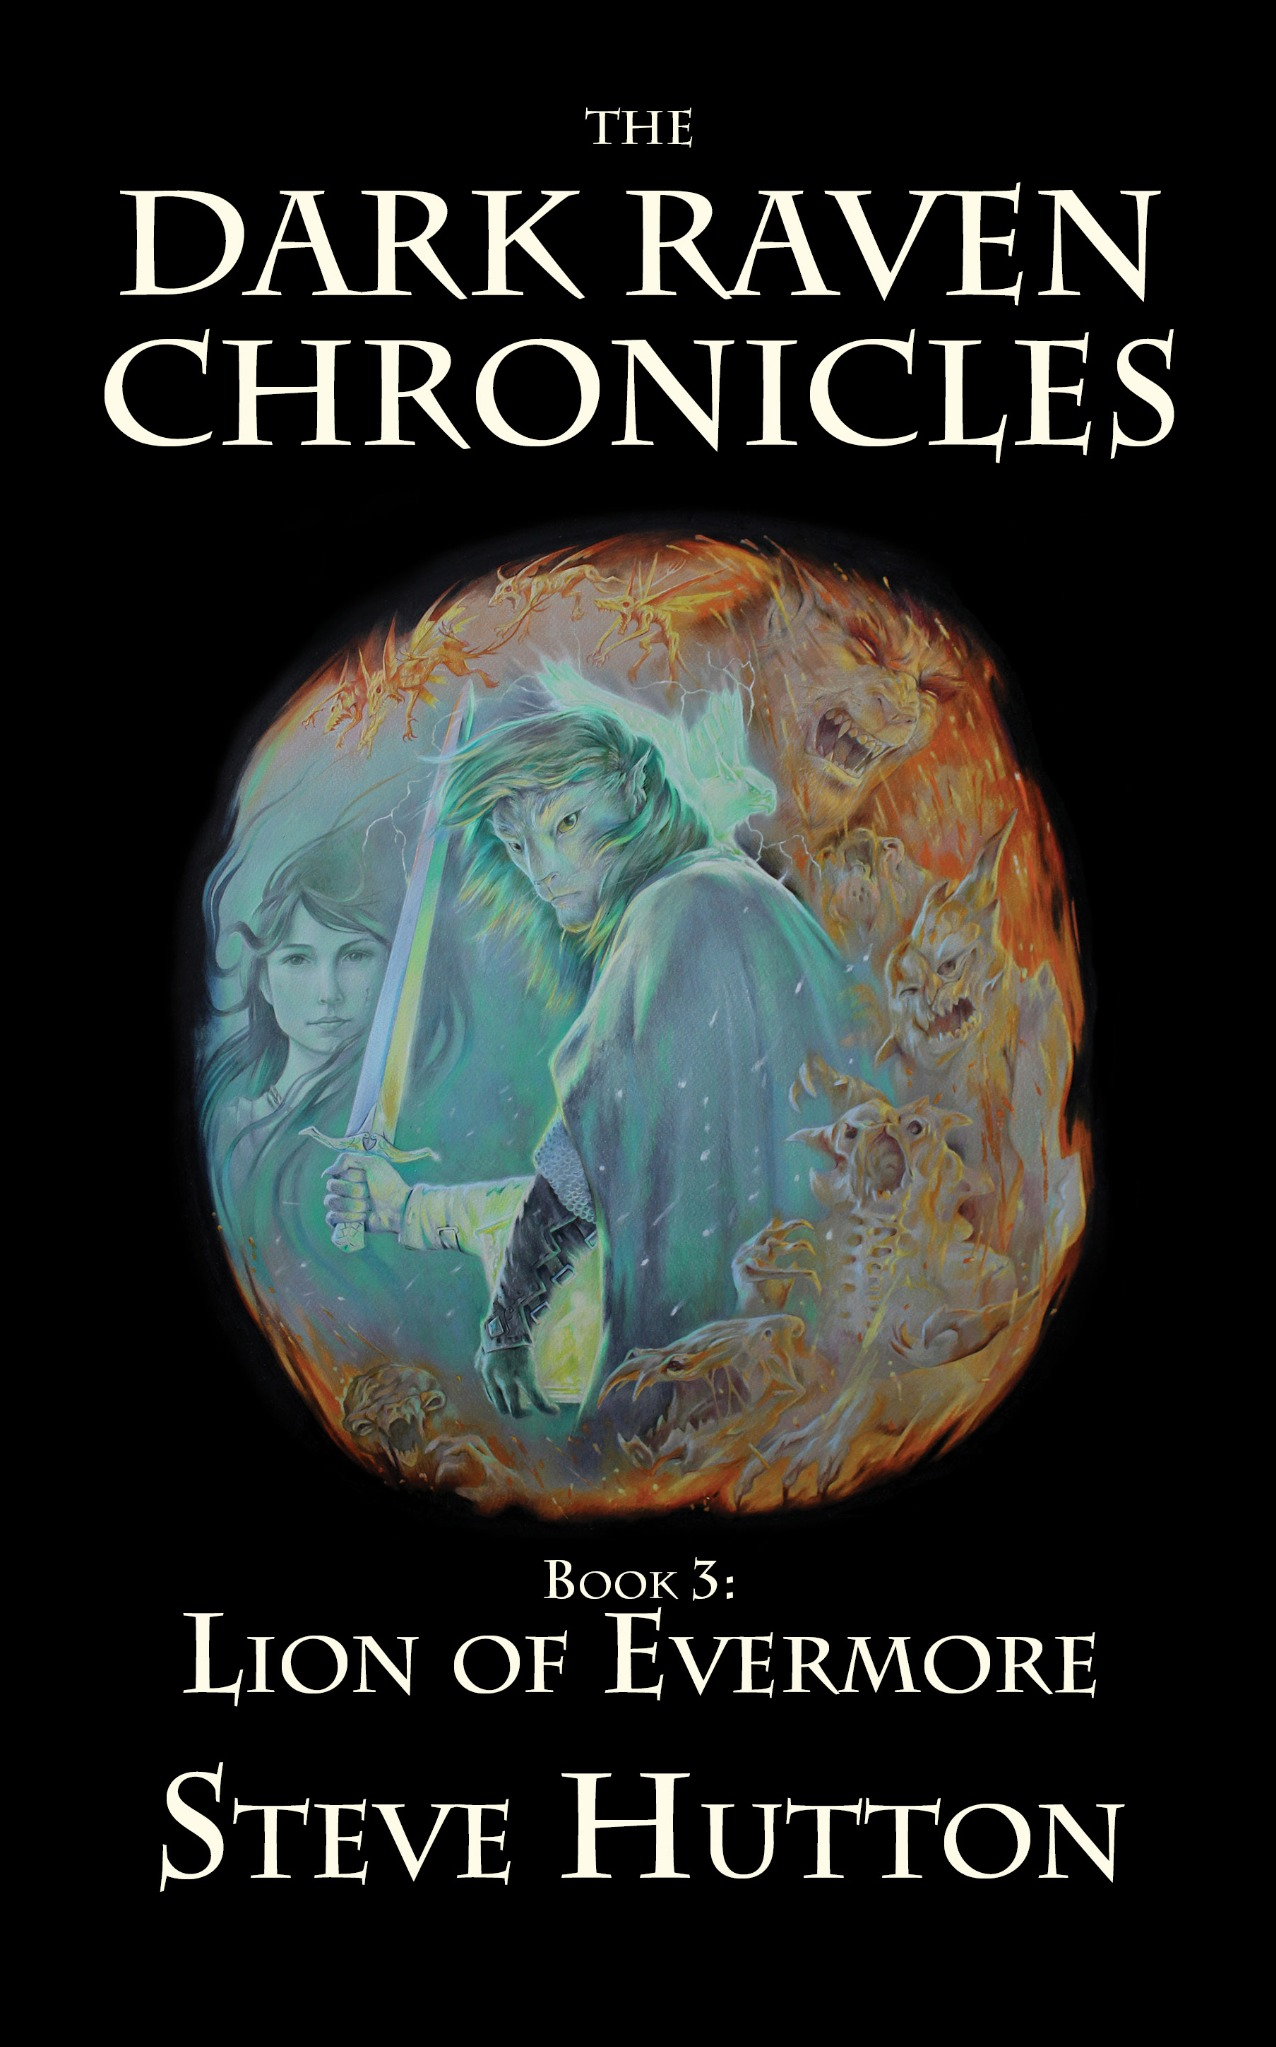 Lion of Evermore: eBook 3